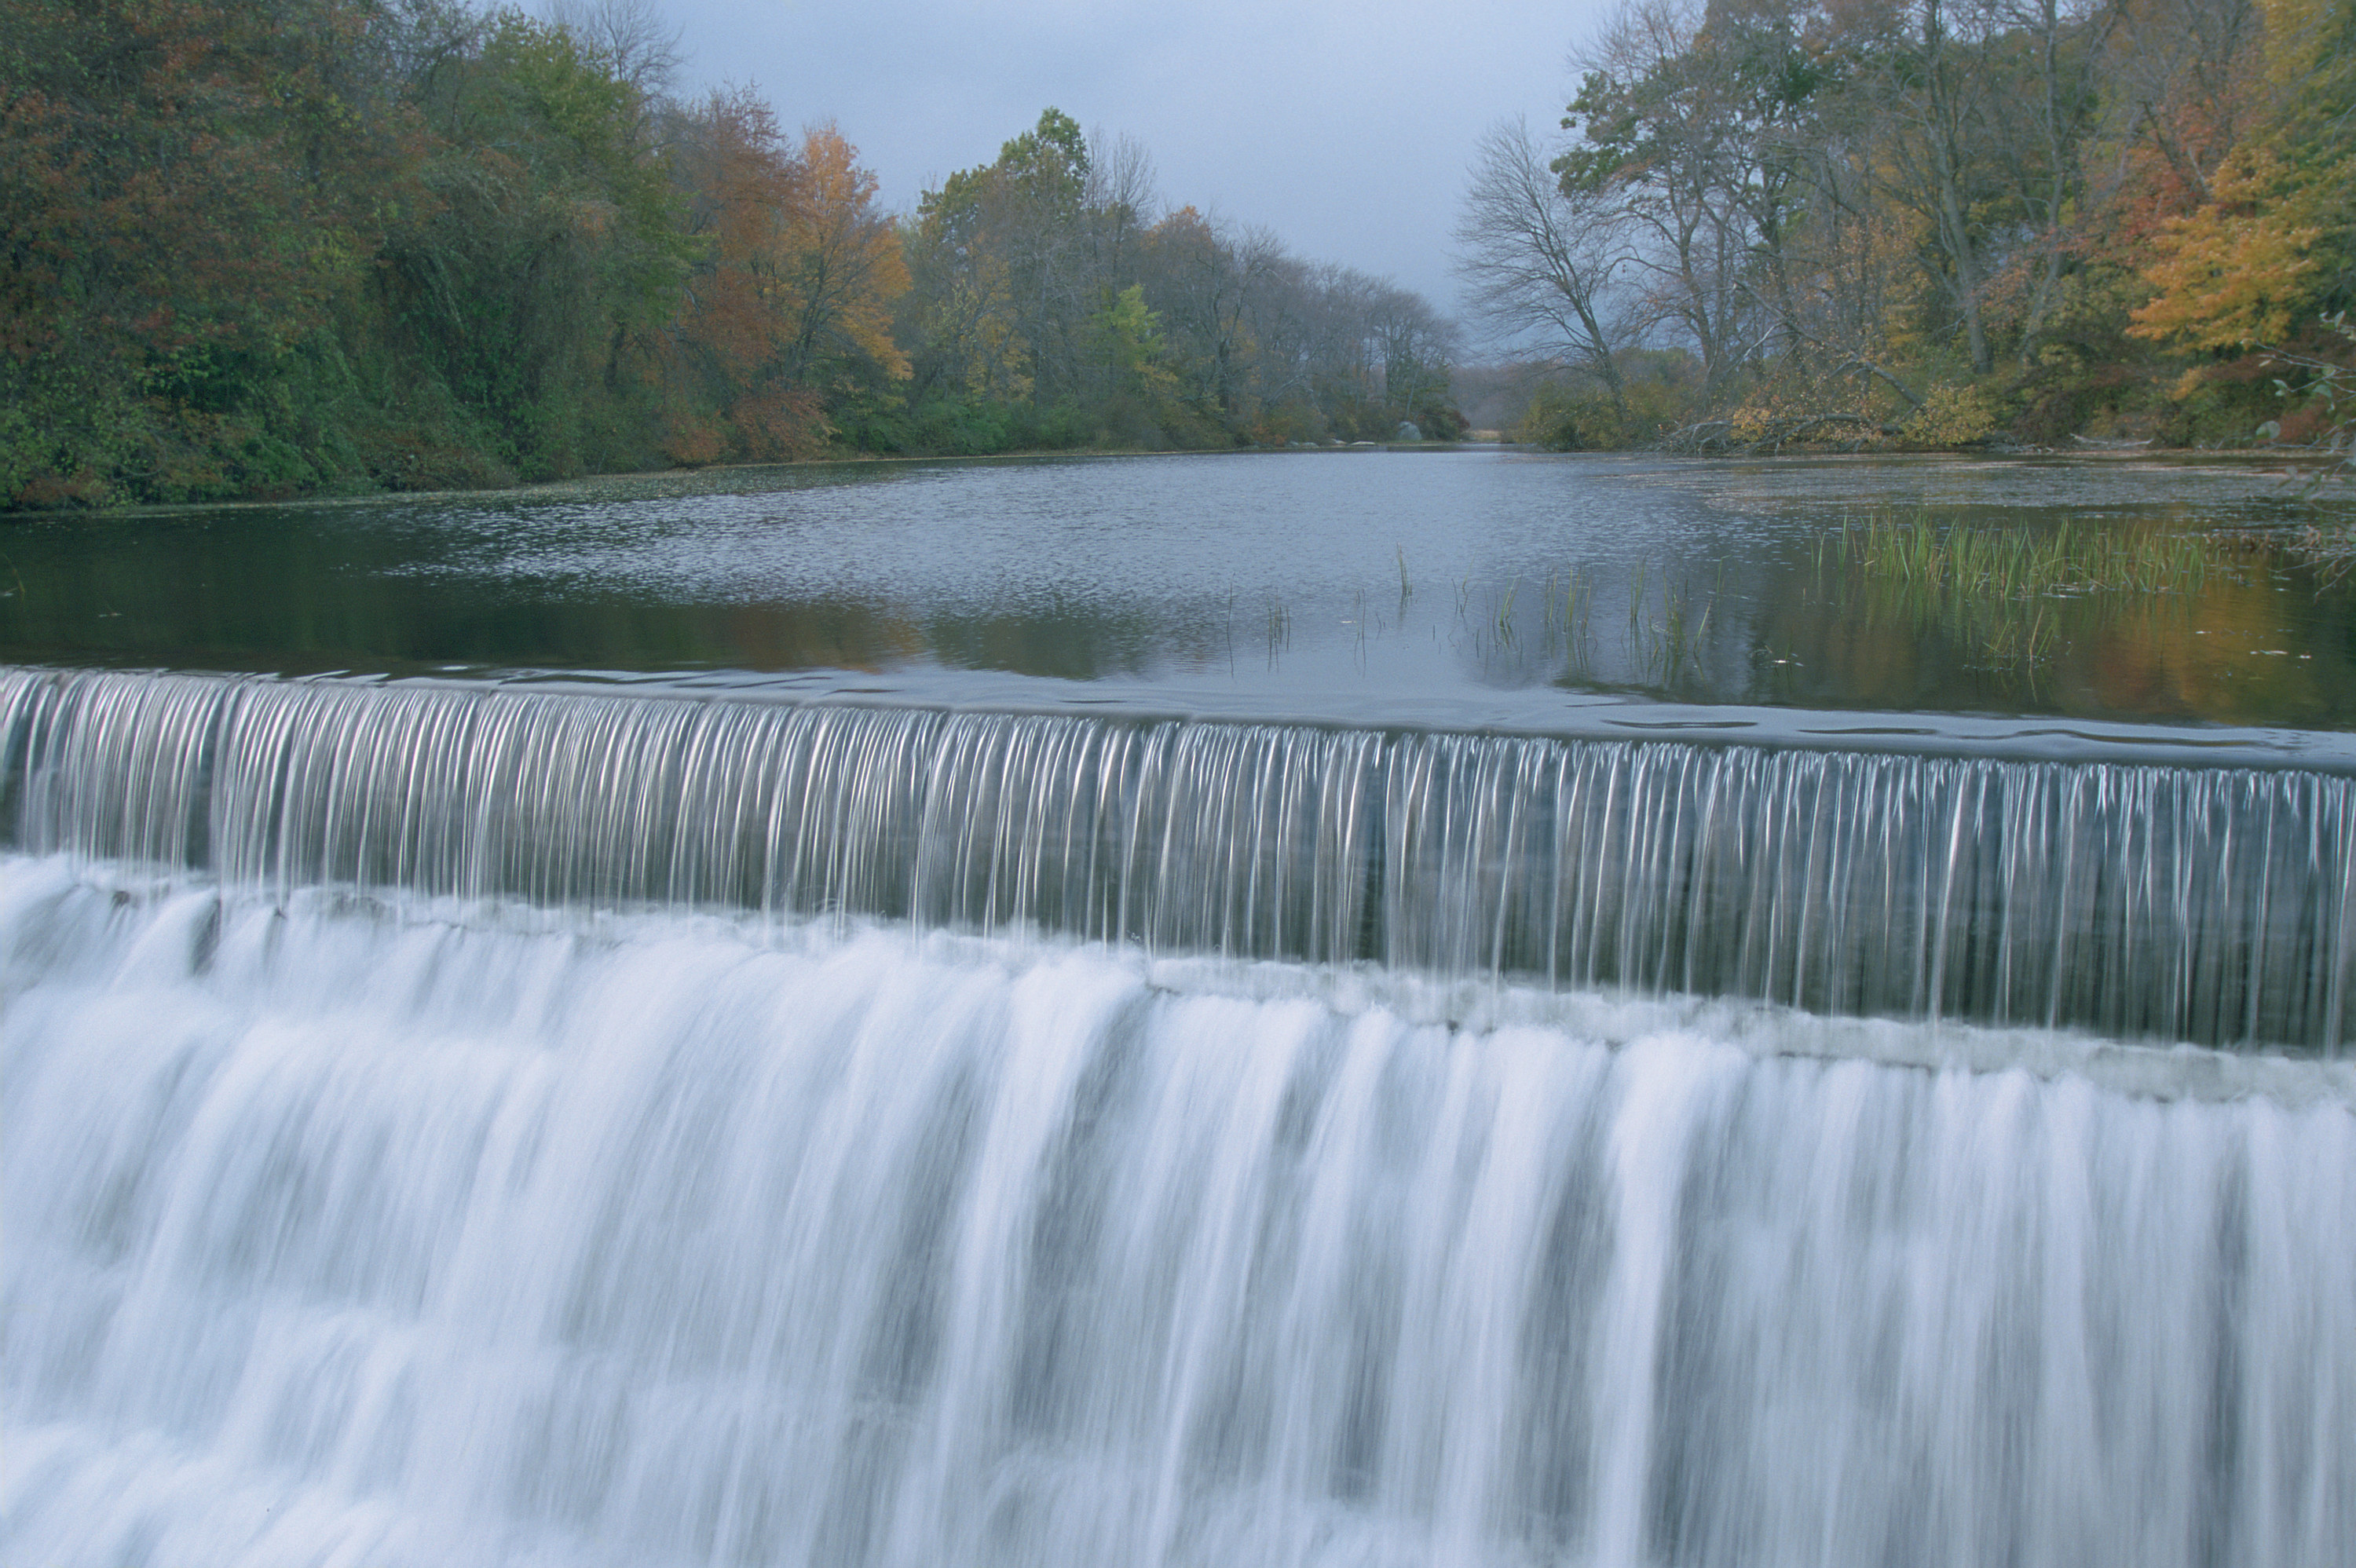 A close-up of a perfectly straight waterfall coursing down. Autumn foliage dresses up the trees behind.